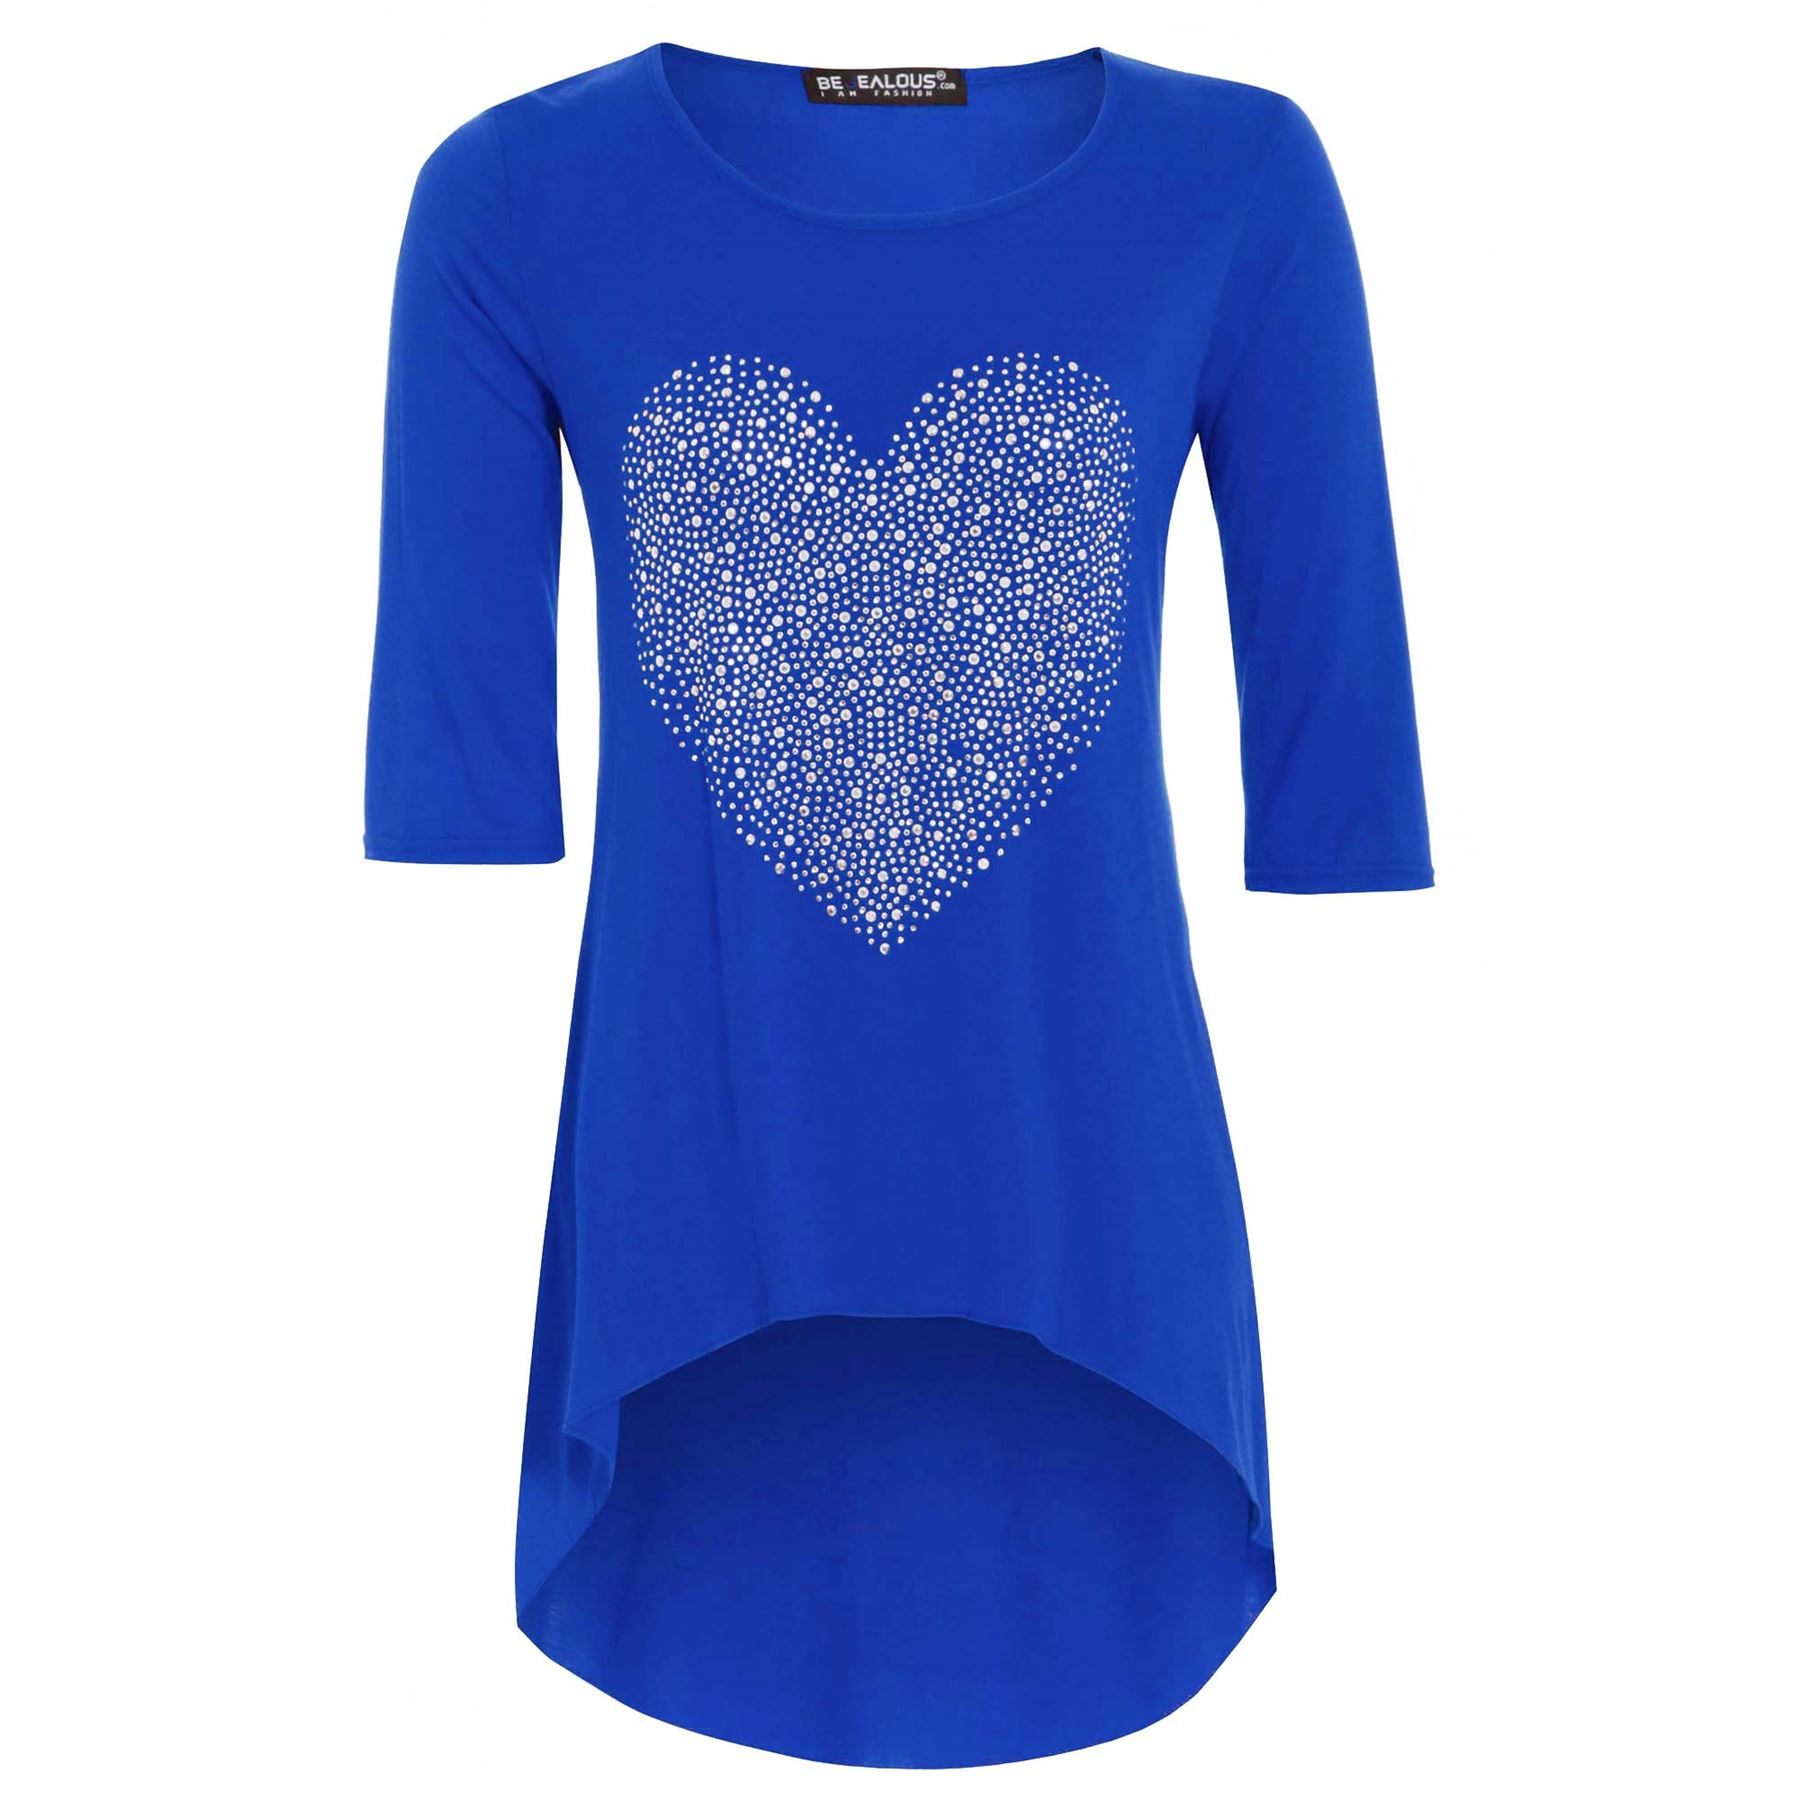 New-Womens-Ladies-3-4-Sleeves-Studded-Heart-Dip-Hem-High-Low-Tunic-Top-Plus-Size